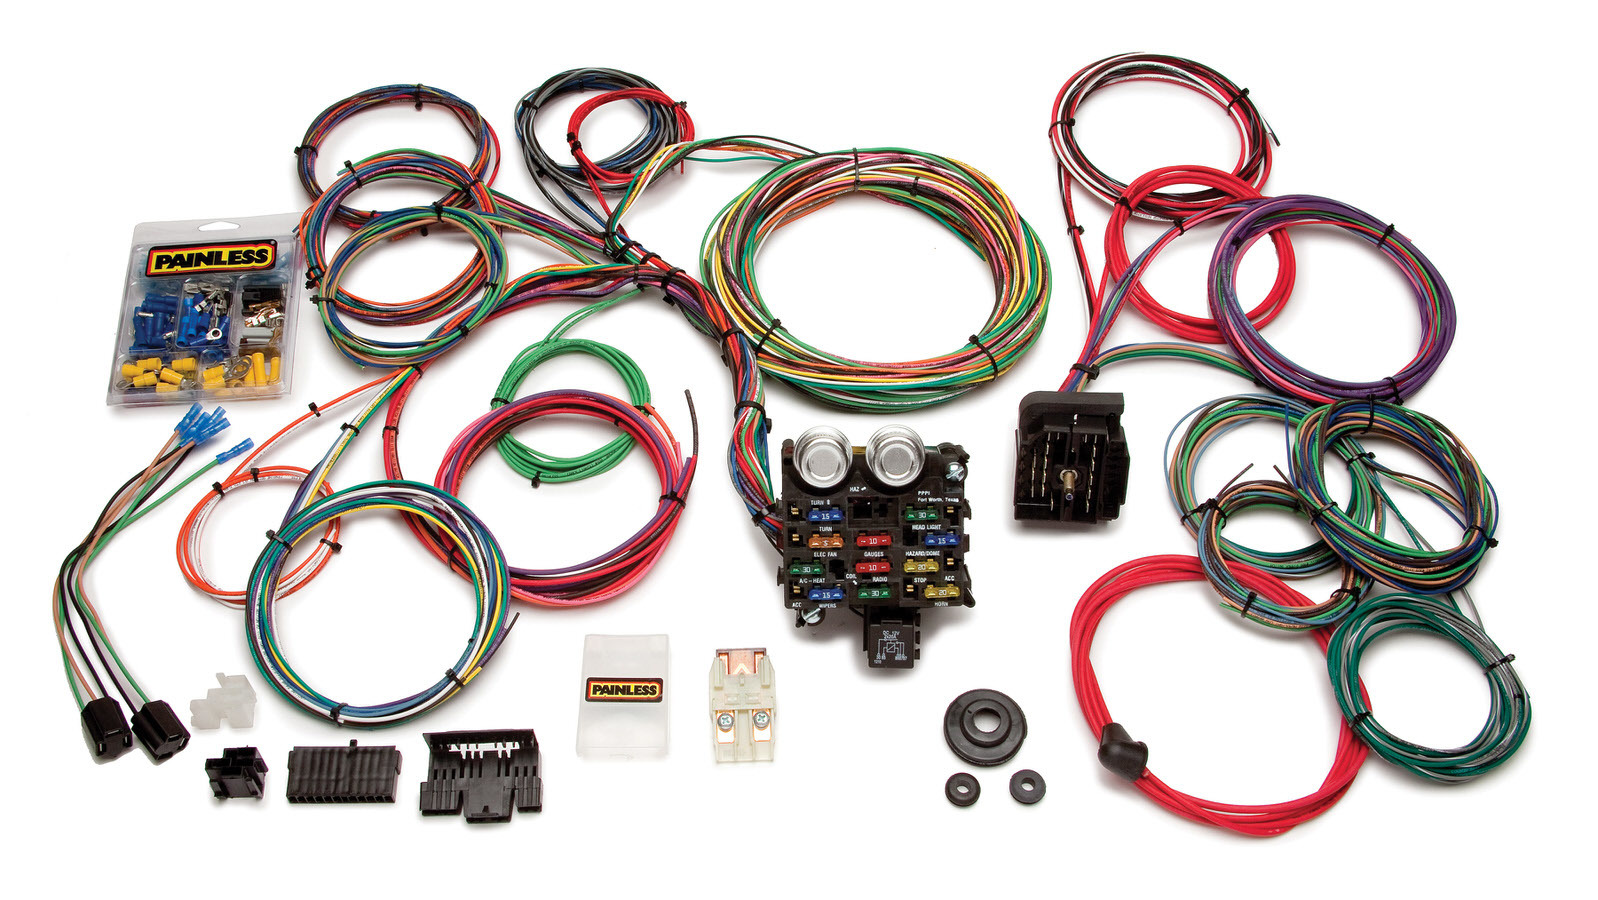 Painless Wiring 20103 Car Wiring Harness, Classic Customizable Muscle Car, Complete, 21 Circuit, Universal, Kit